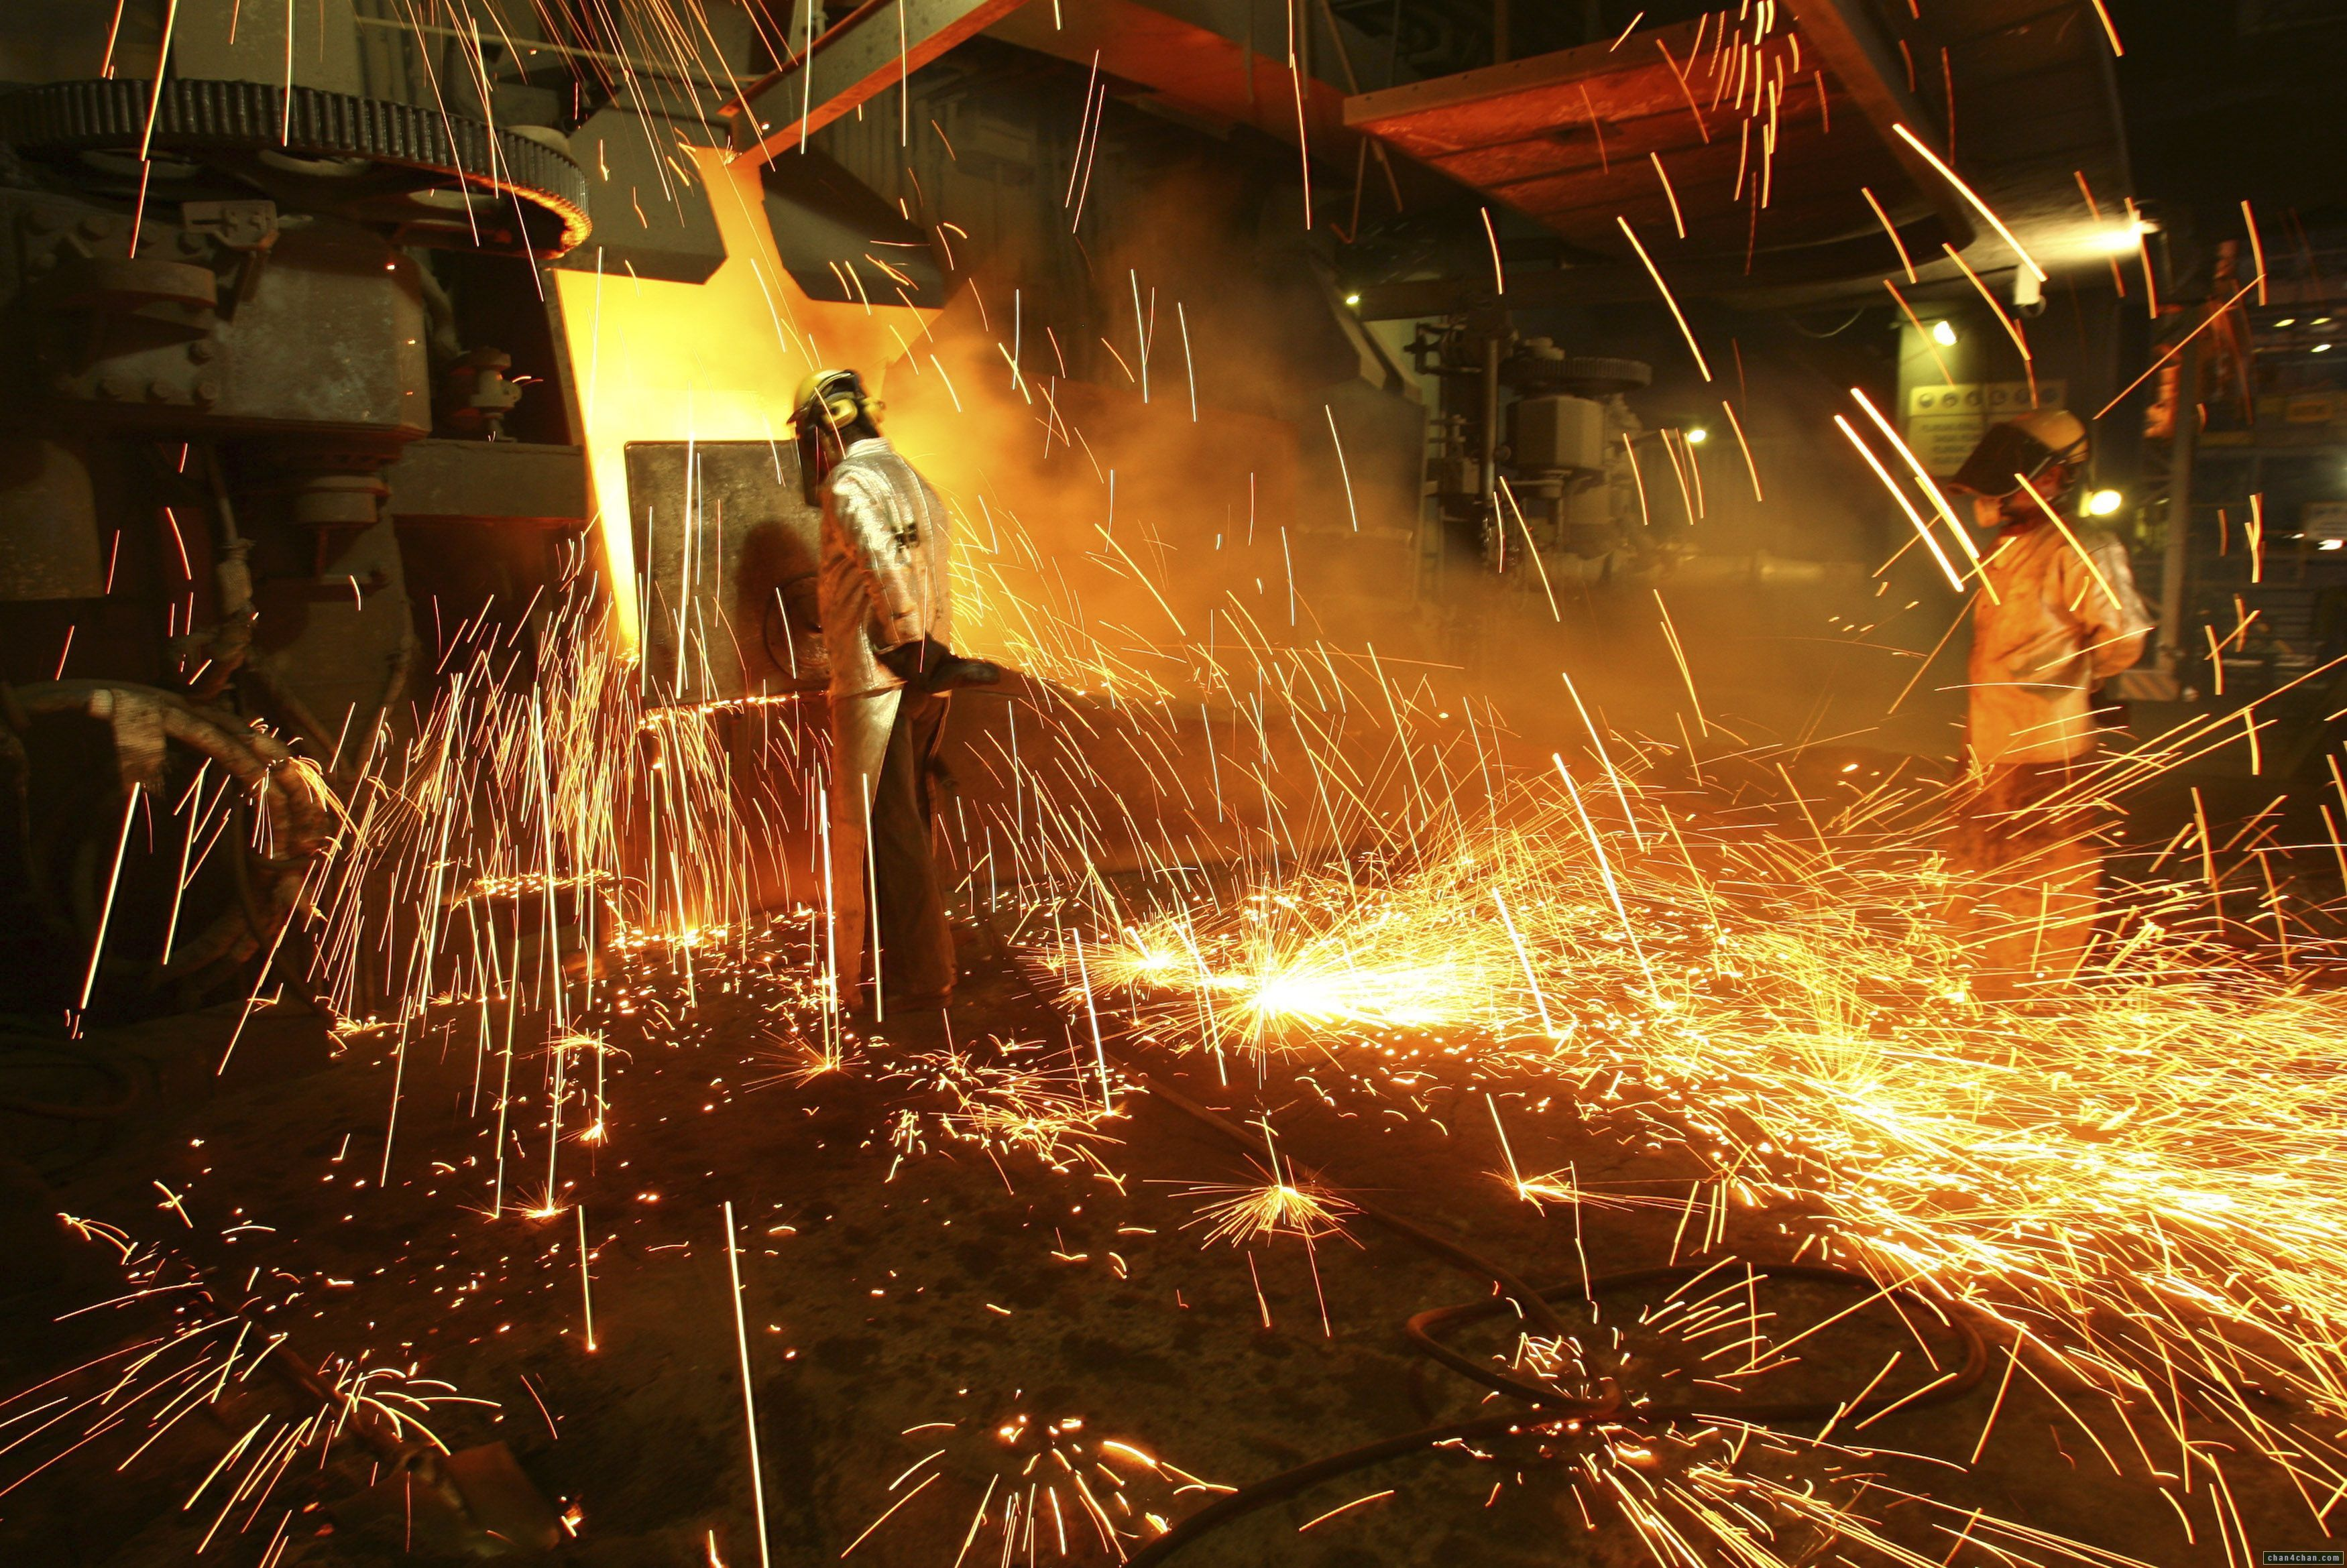 Furnace at a foundry throws out sparks. Business and